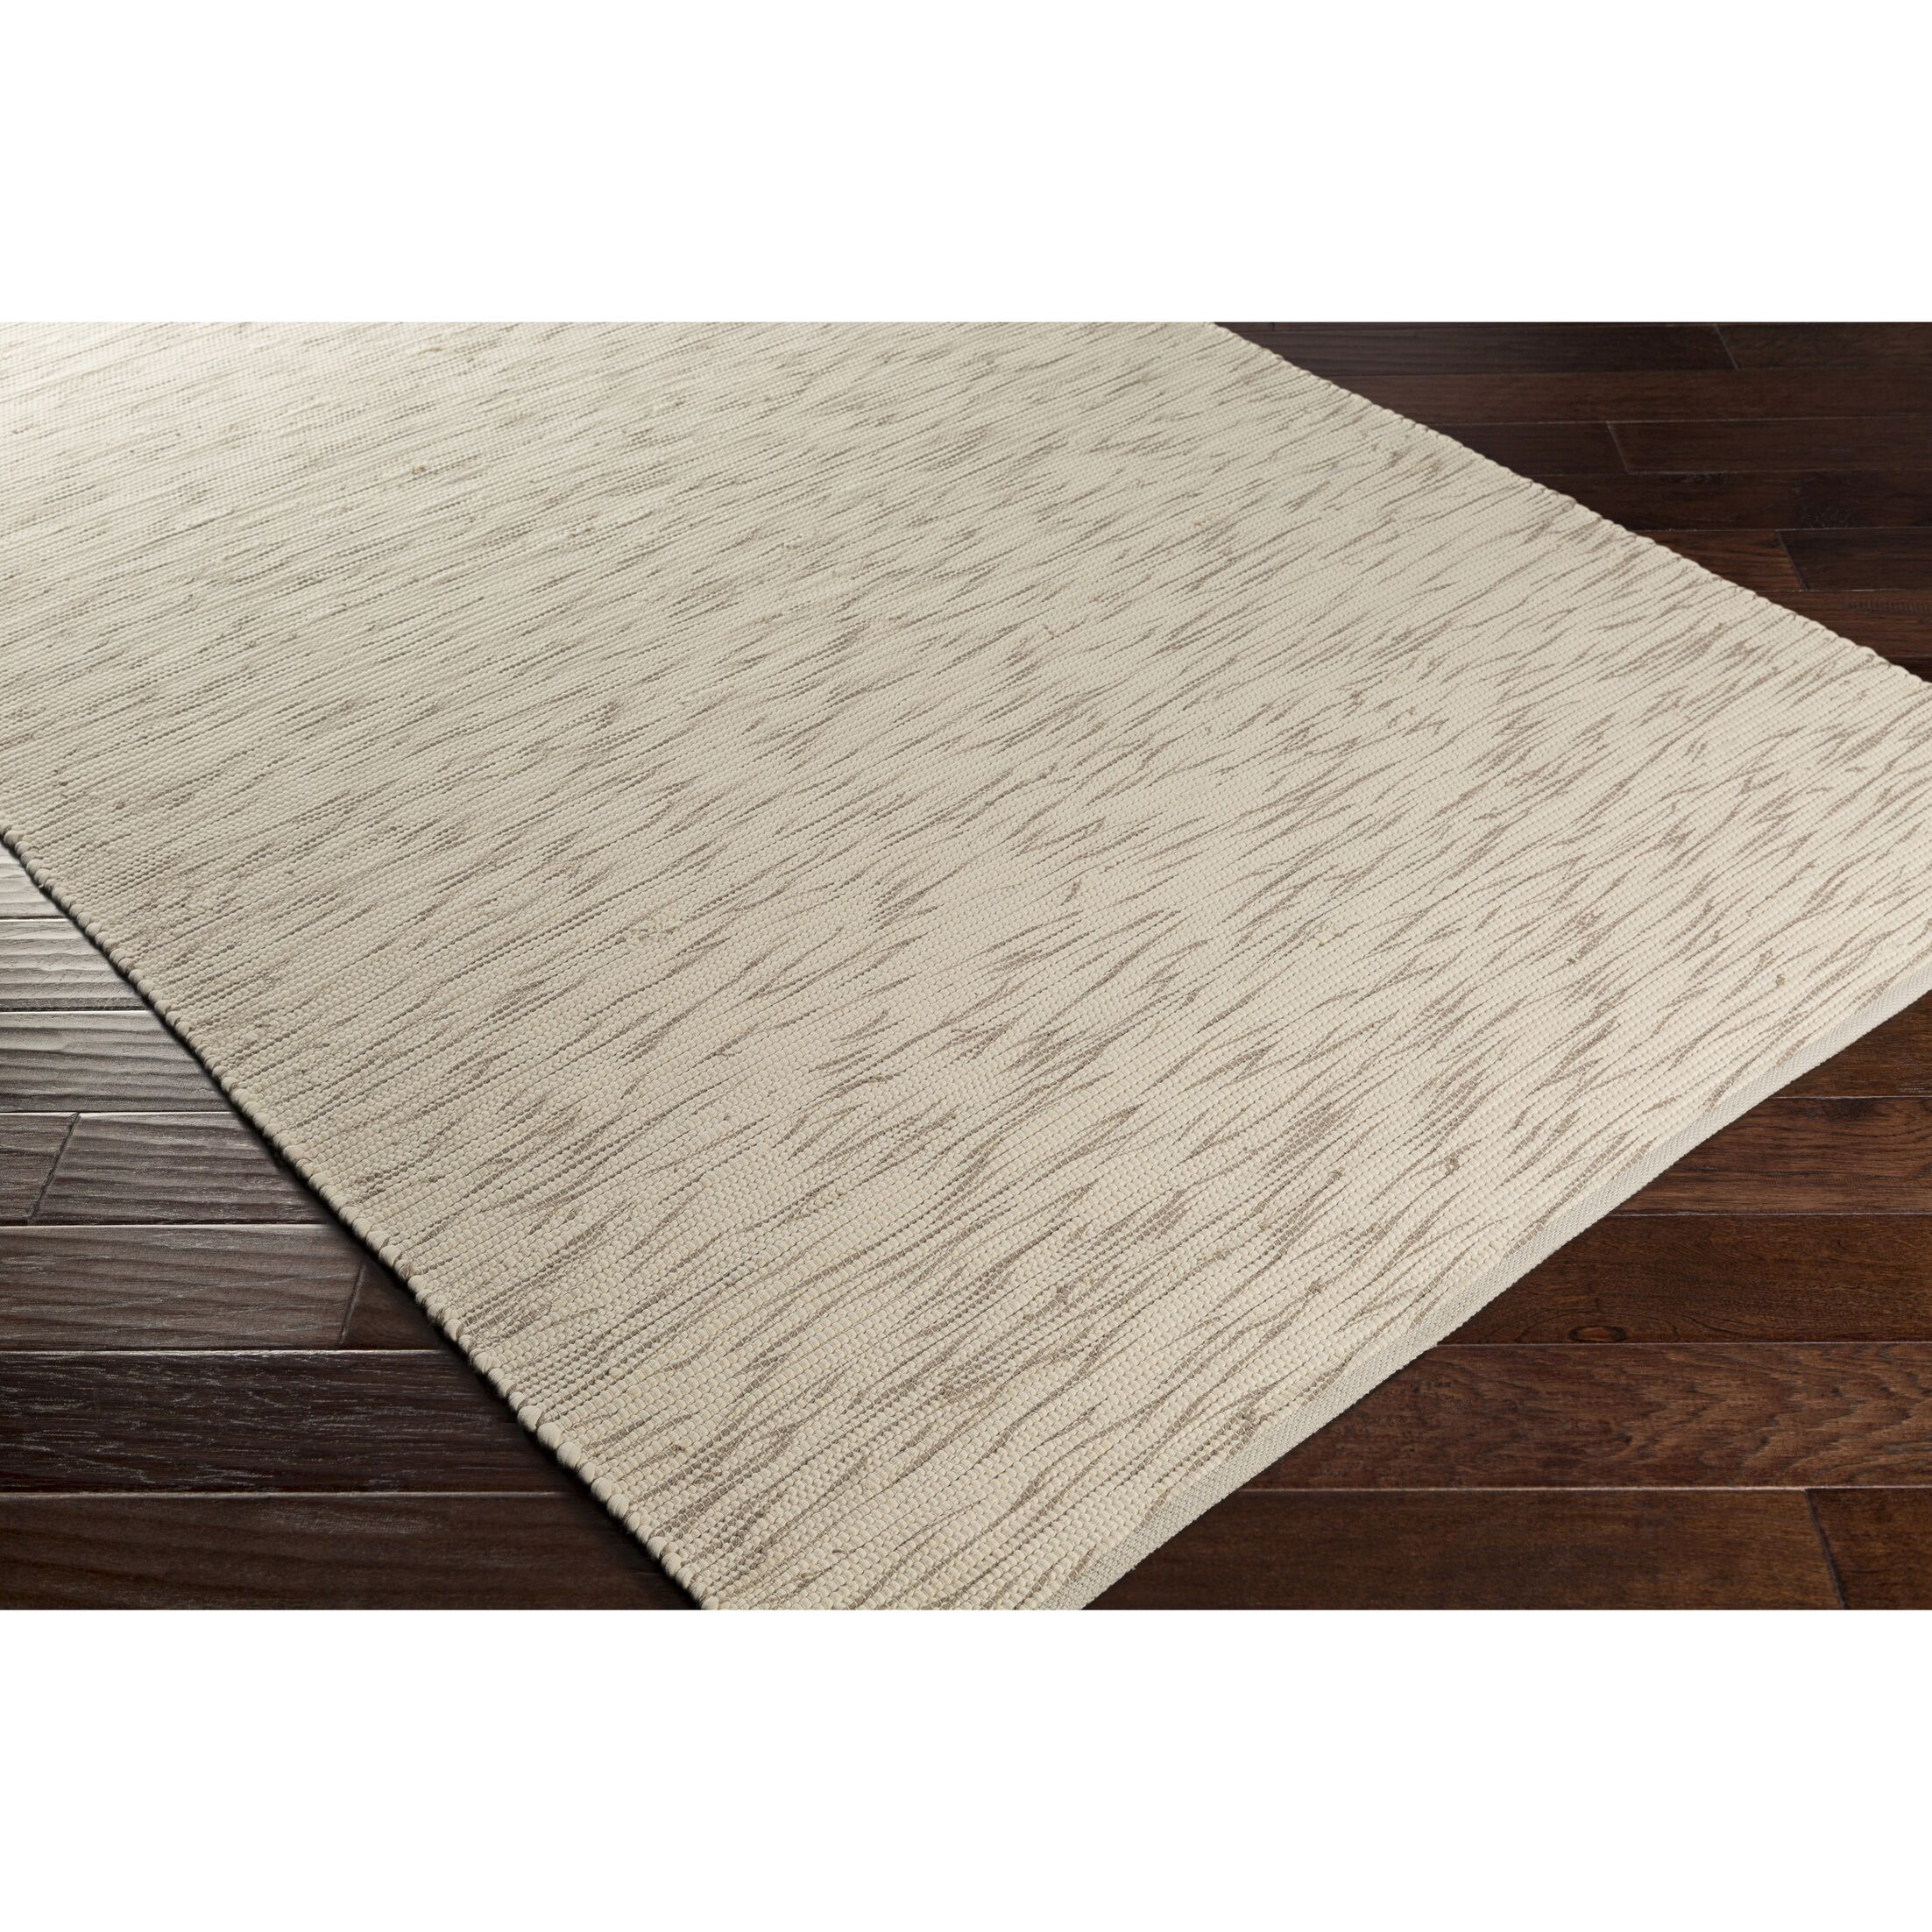 Forestport Hand-Woven Gray/Neutral Area Rug Rug Size: Rectangle 5' x 7'6